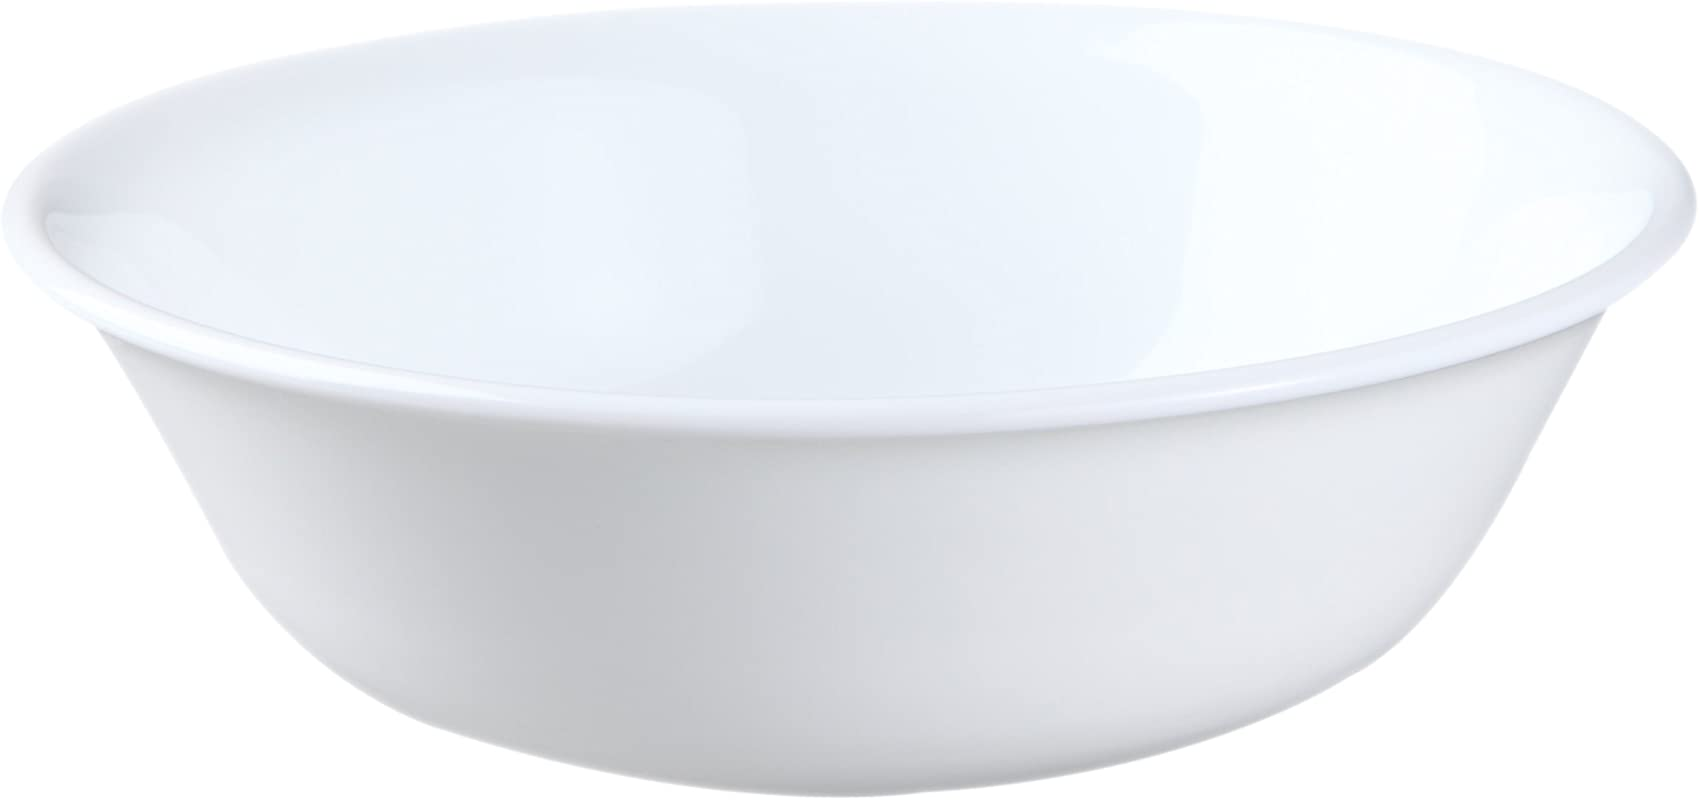 Corelle Soup Cereal Bowls Set 18 Ounce 6 Piece Winter Frost White